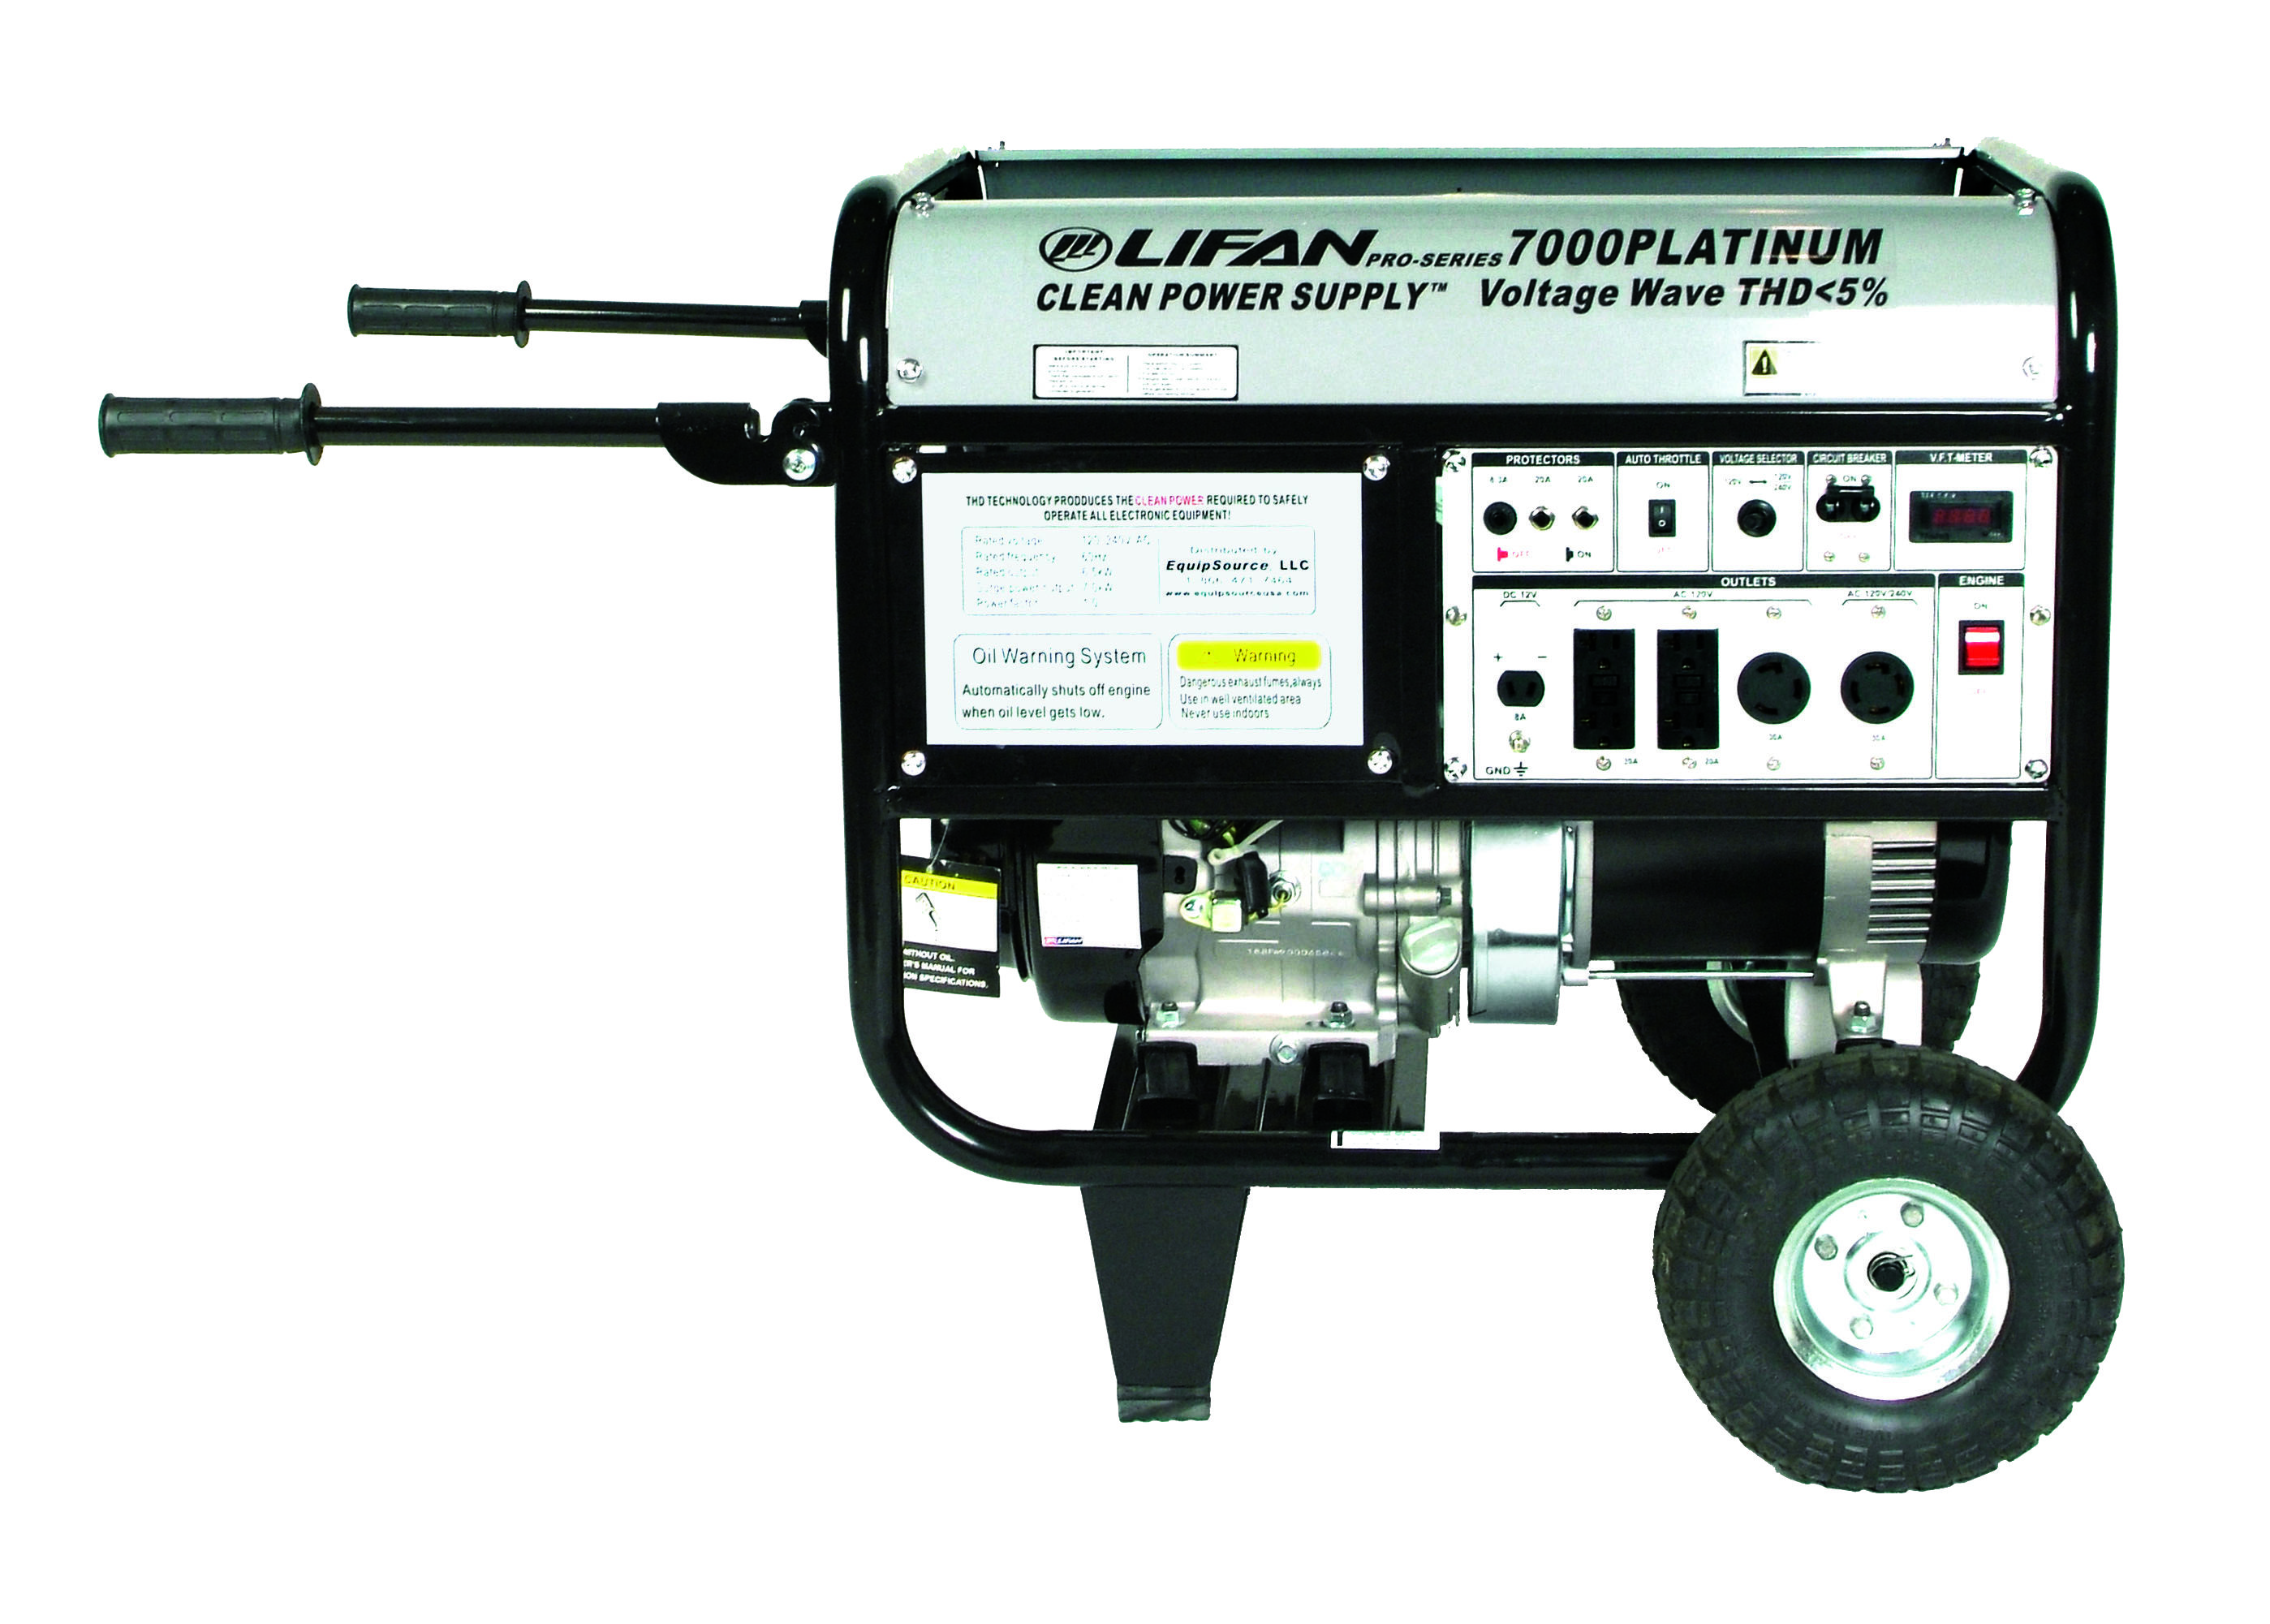 platinum 7000ipl lifan power usa lifan power usa s lf7000ipl lf7000ipl ca generators are part of our platinum portable generator series our platinum portable generators contain low thd